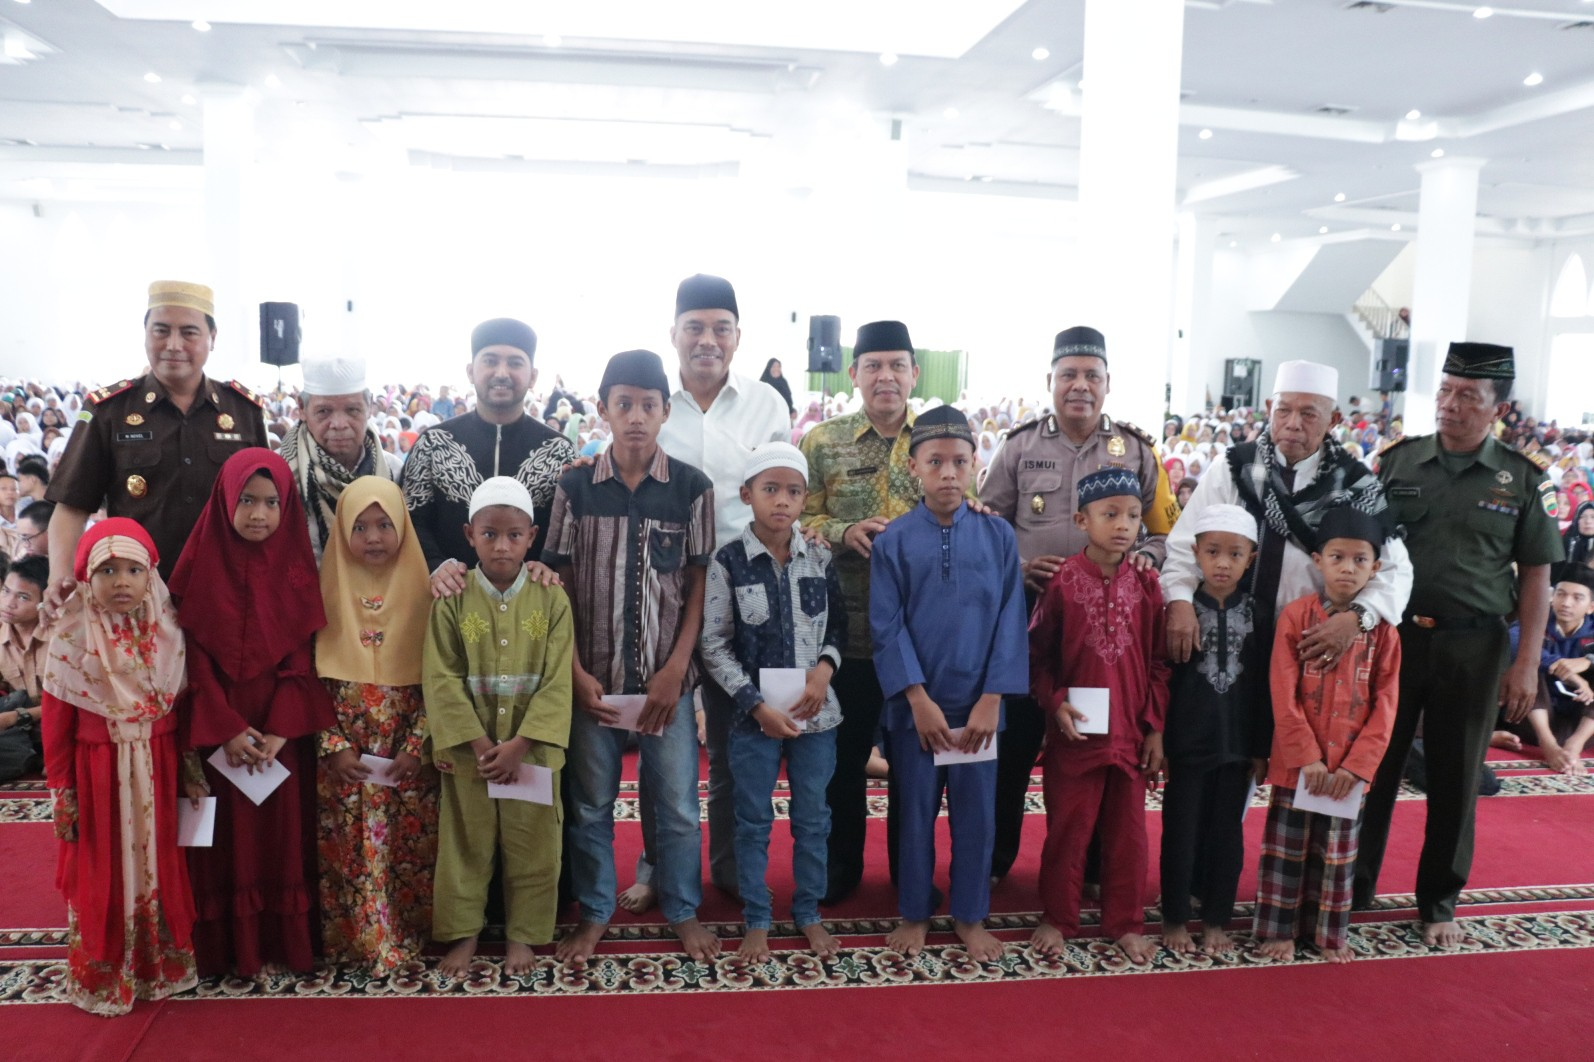 /photos/shares/berita_foto/november/MAULID NABI/IMG_5779.JPG